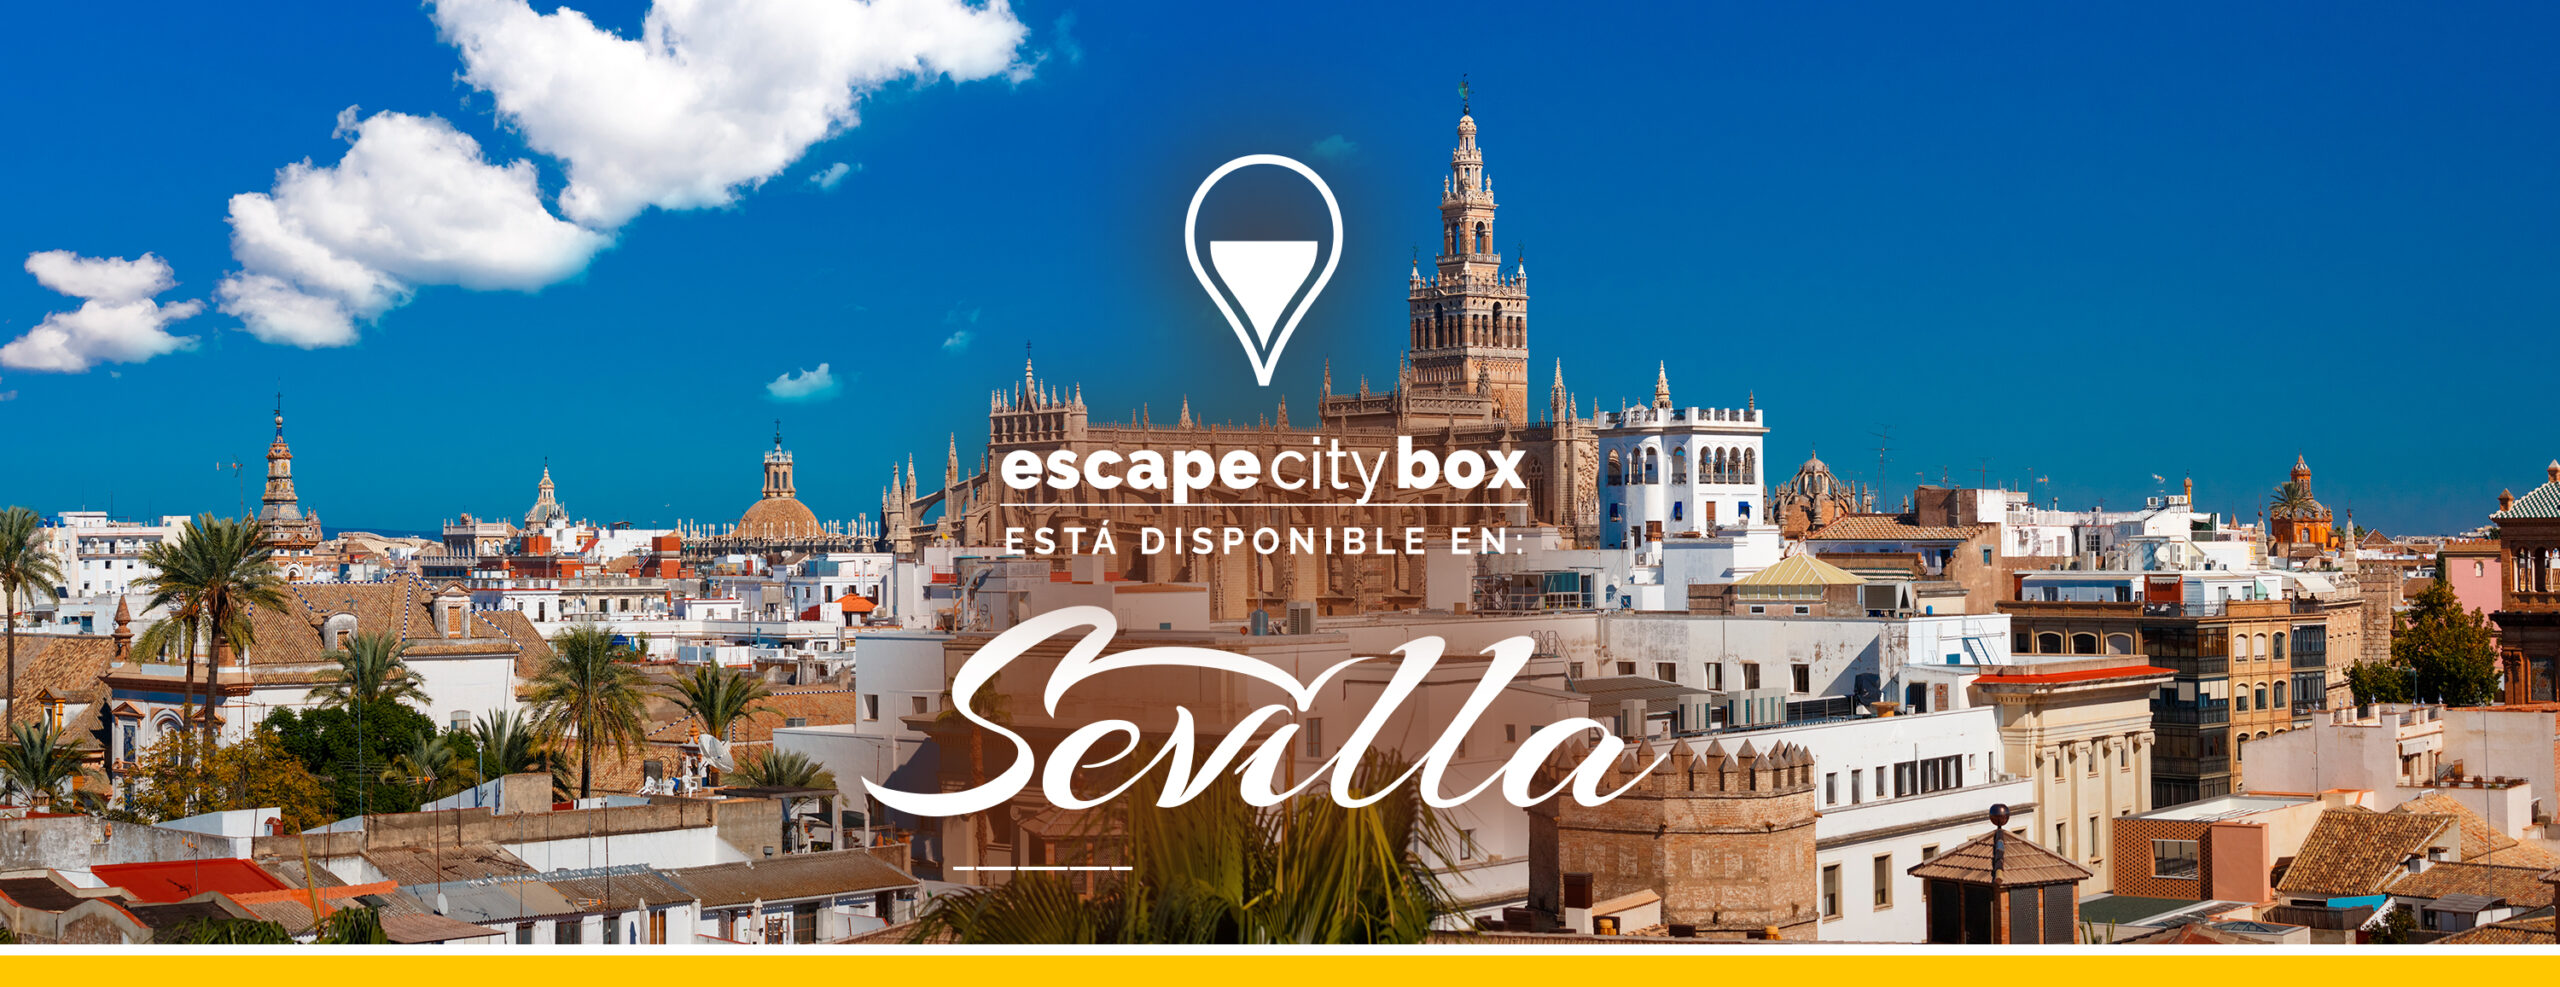 Escape city en Sevilla